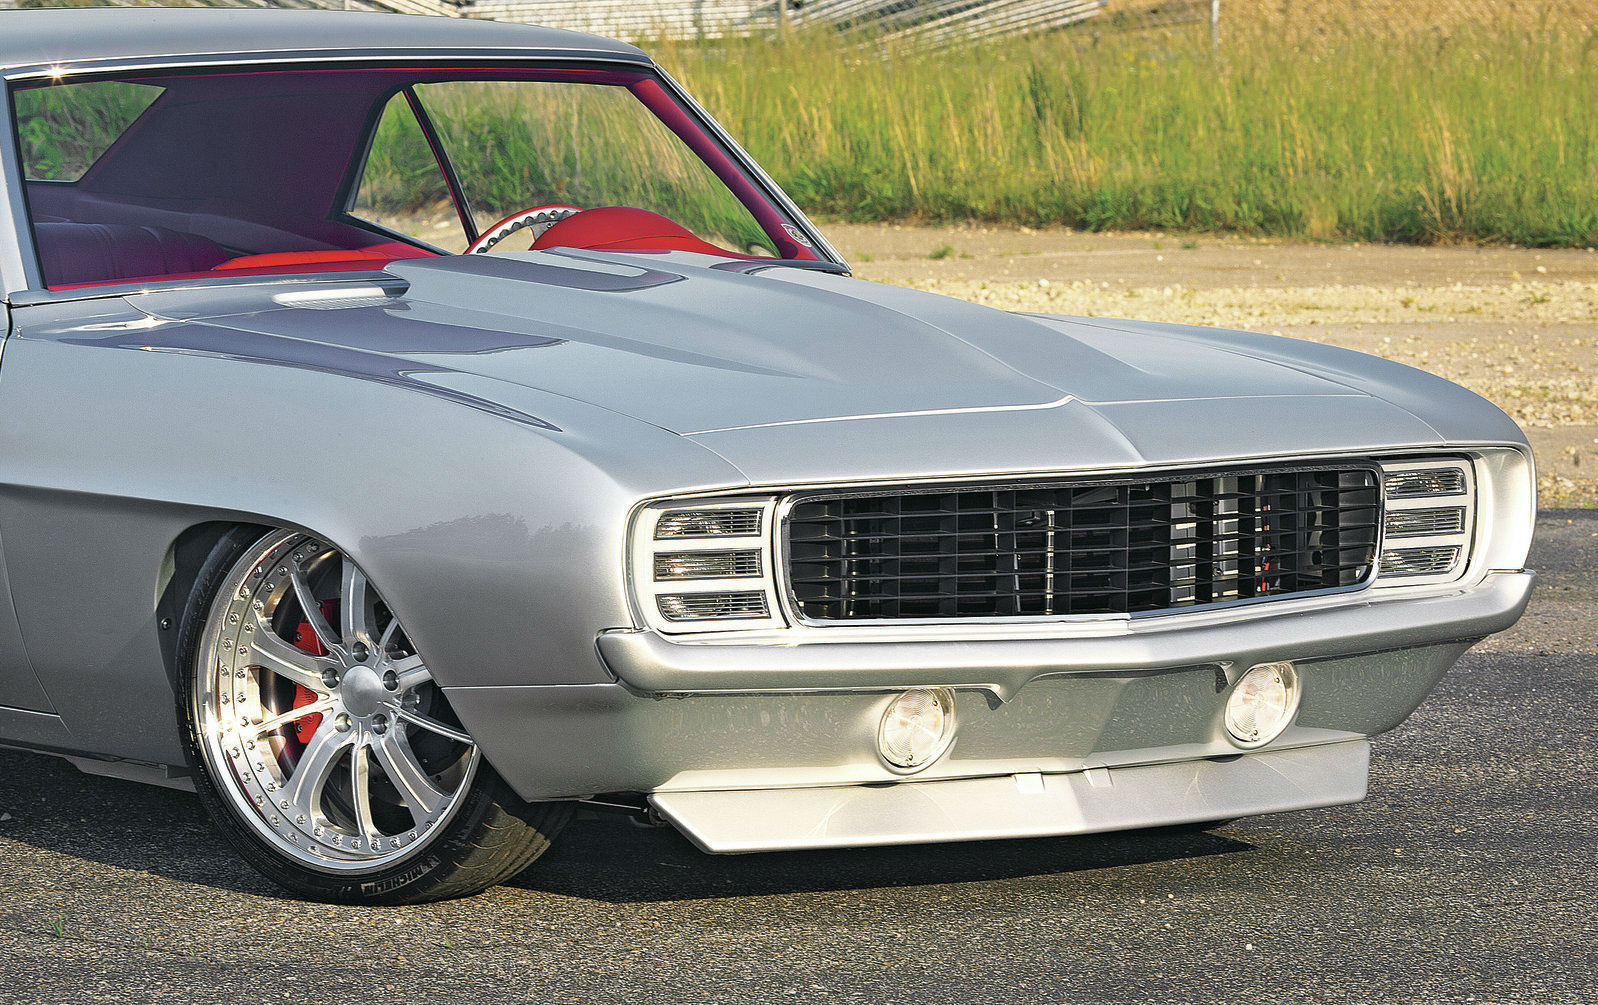 1969 Dupont Chevy Camaro Silver Smooth Like Silk